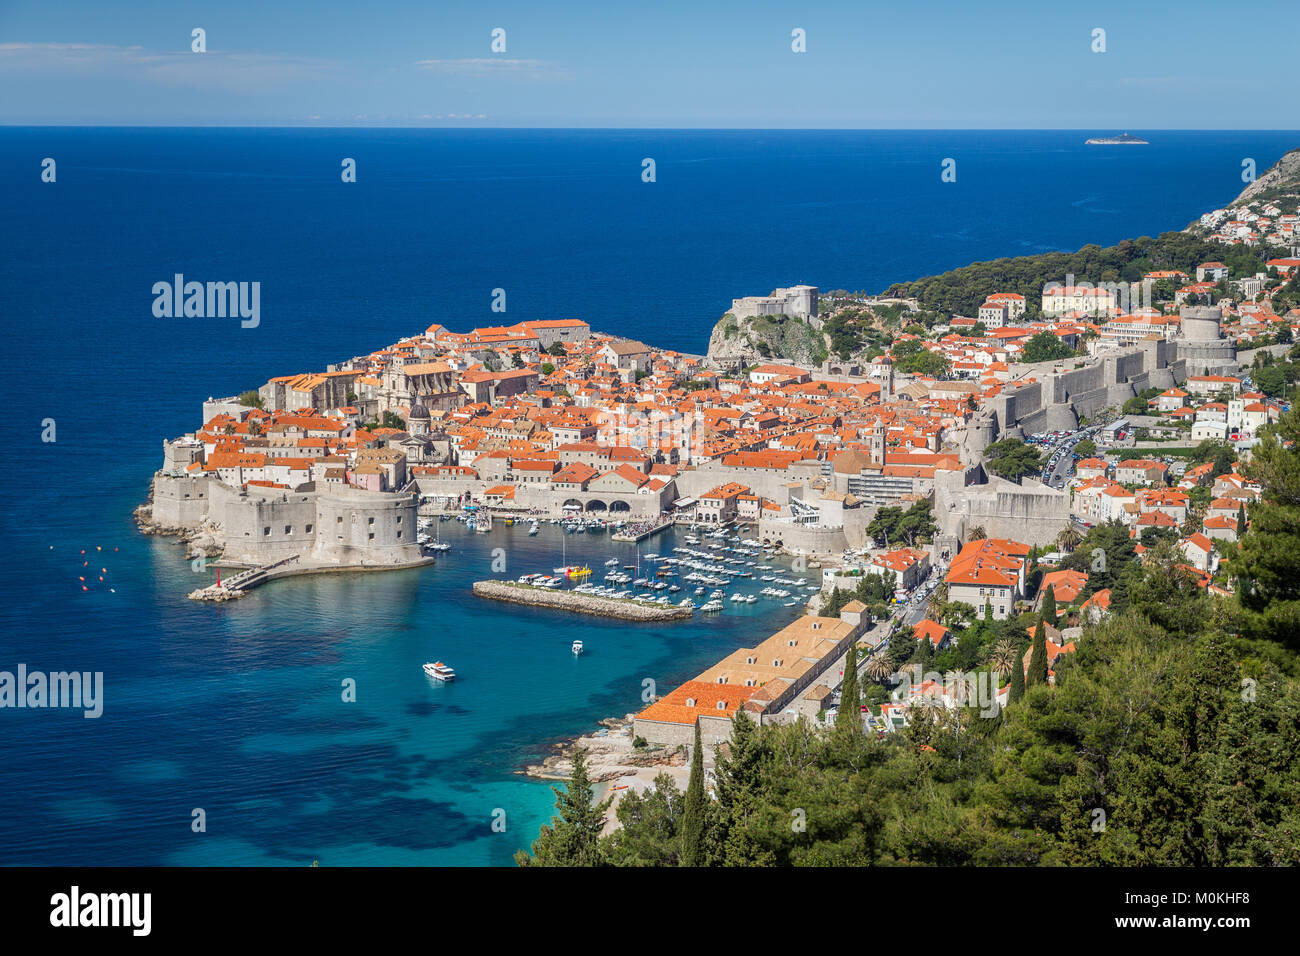 Panoramic view of the historic city of Dubrovnik, one of the most famous tourist destinations in the Mediterranean - Stock Image